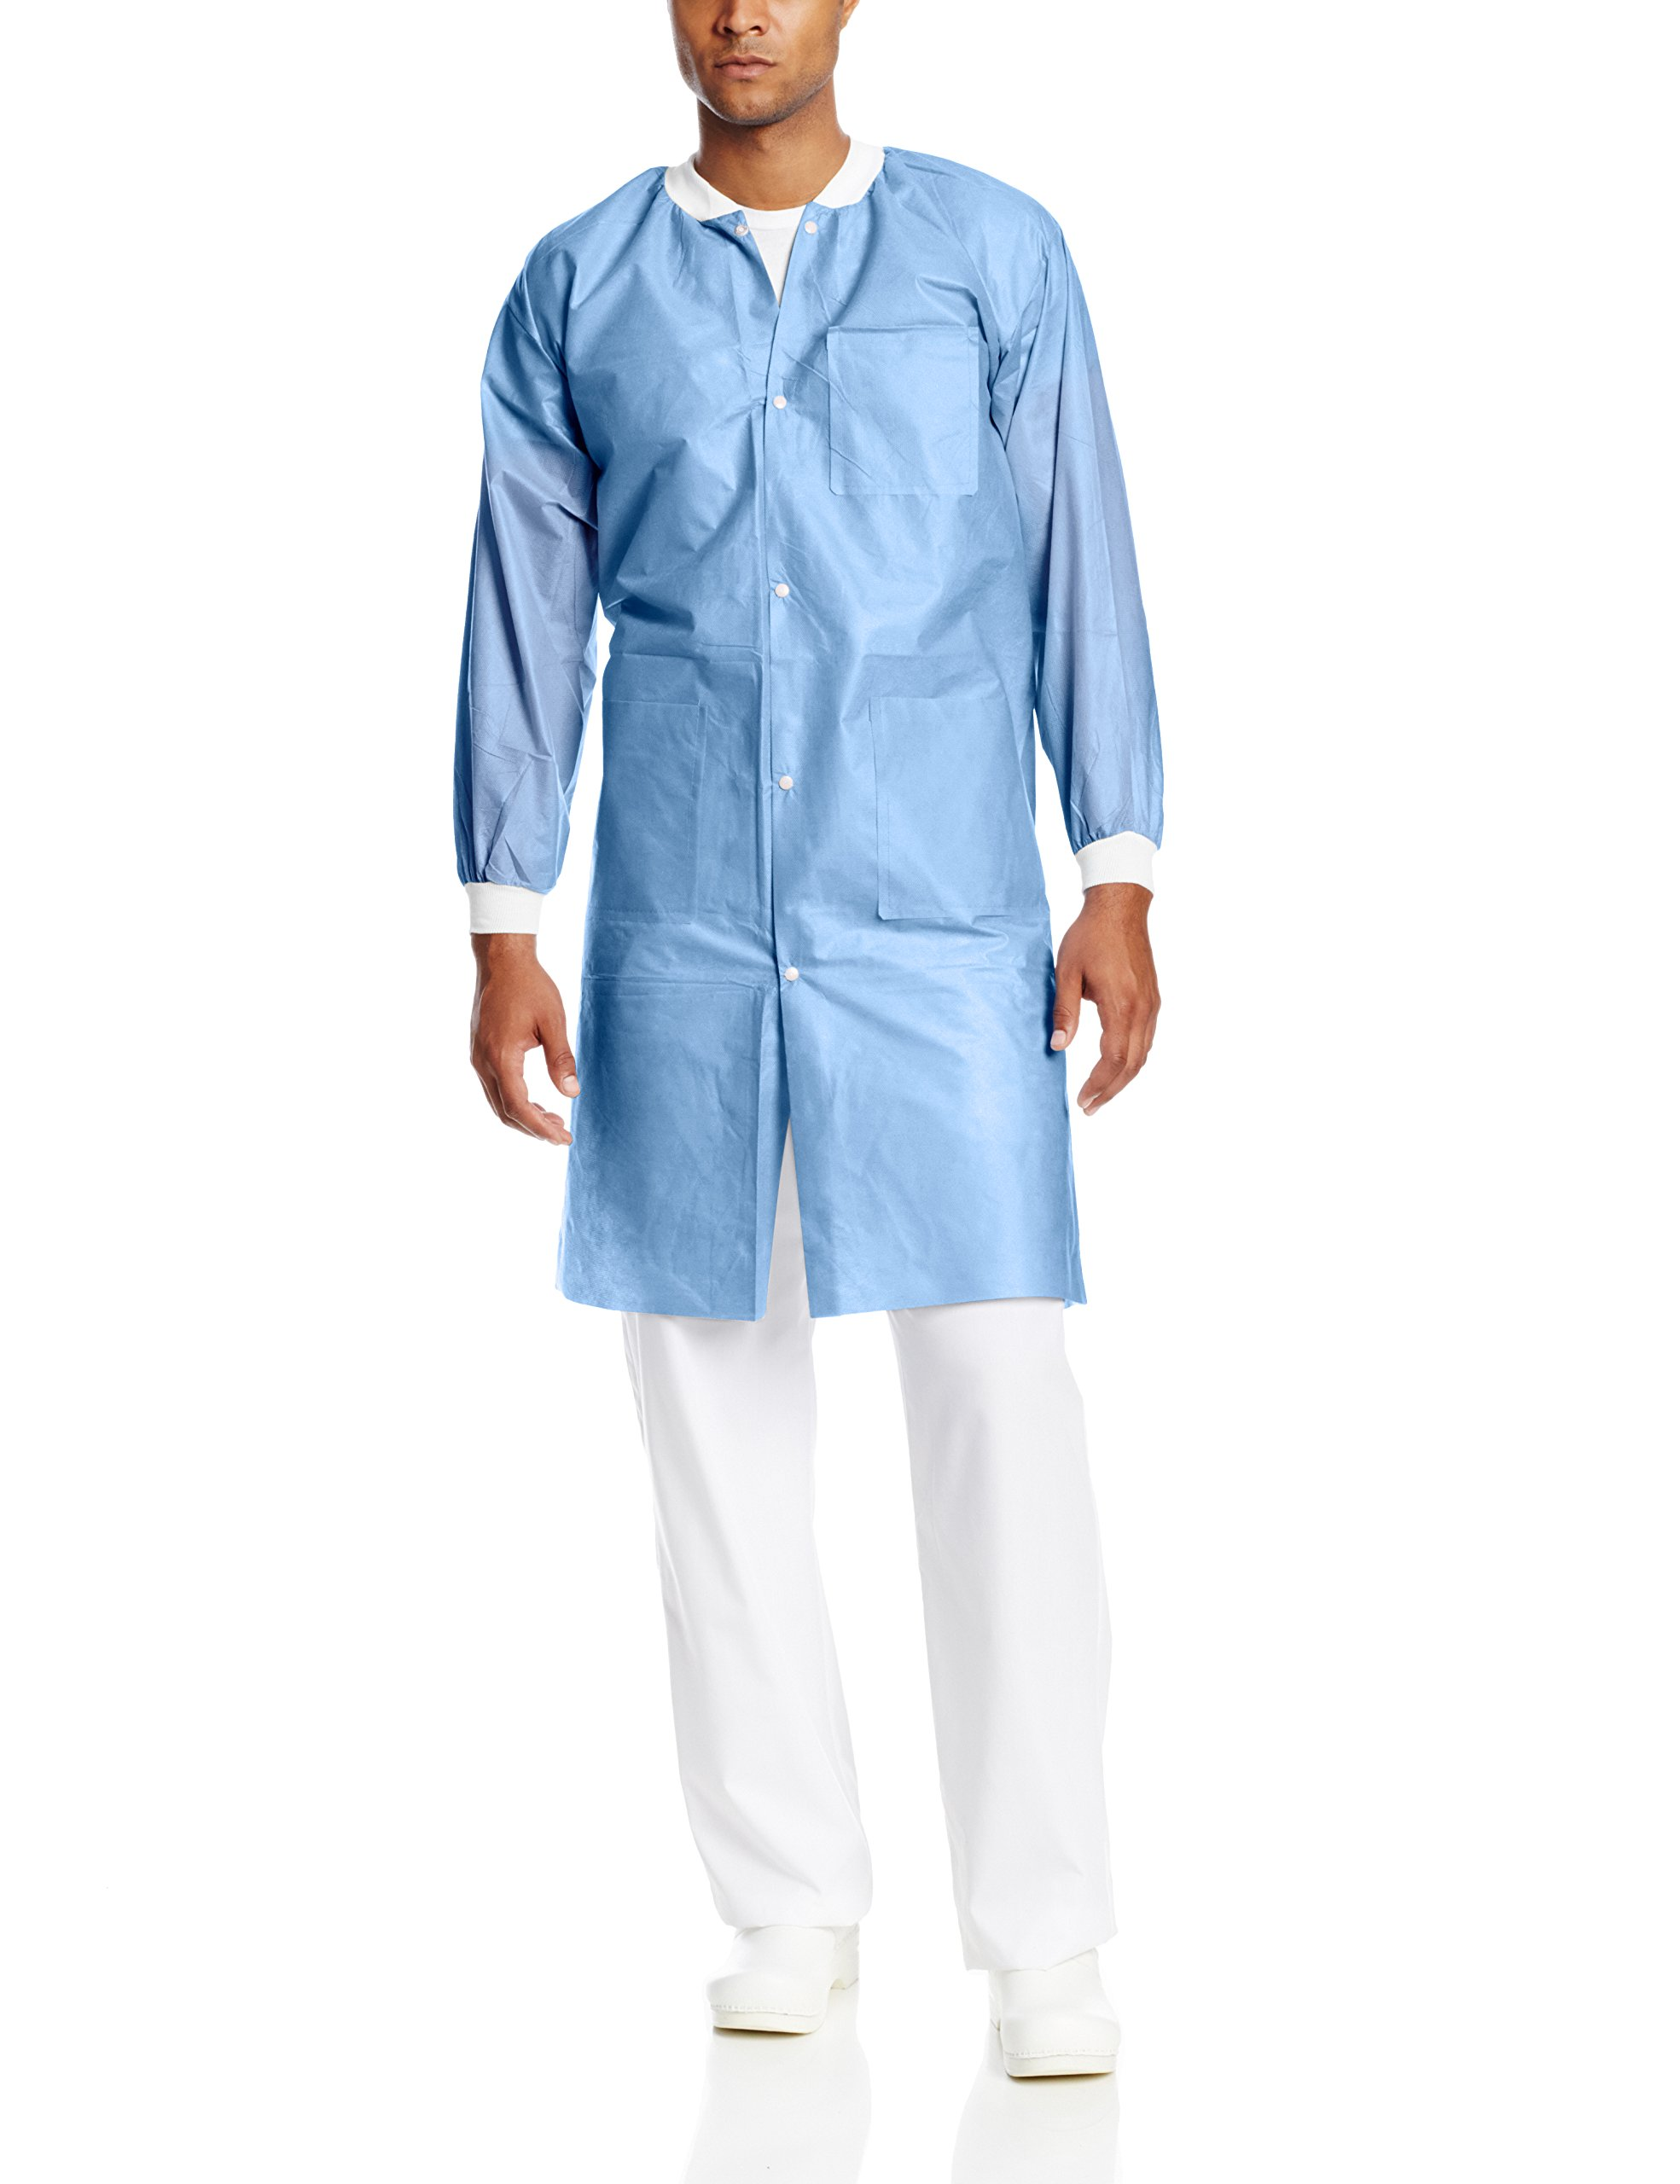 ValuMax 3560CBM Easy Breathe Cool and Strong, No-Wrinkle, Professional Disposable SMS Knee Length Lab Coat, Ceil Blue, M, Pack of 10